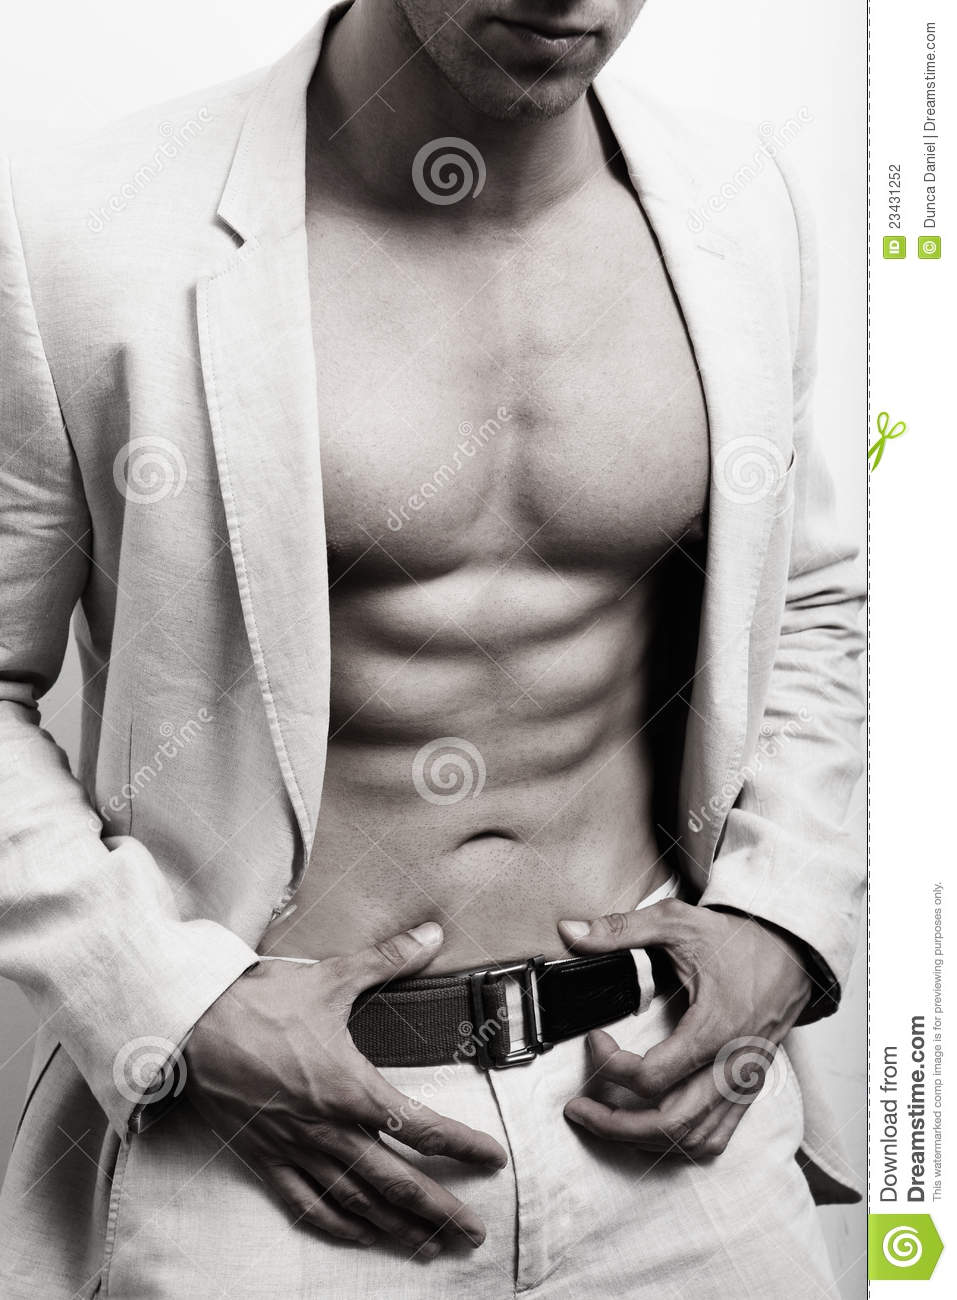 Muscular man with abs and suit